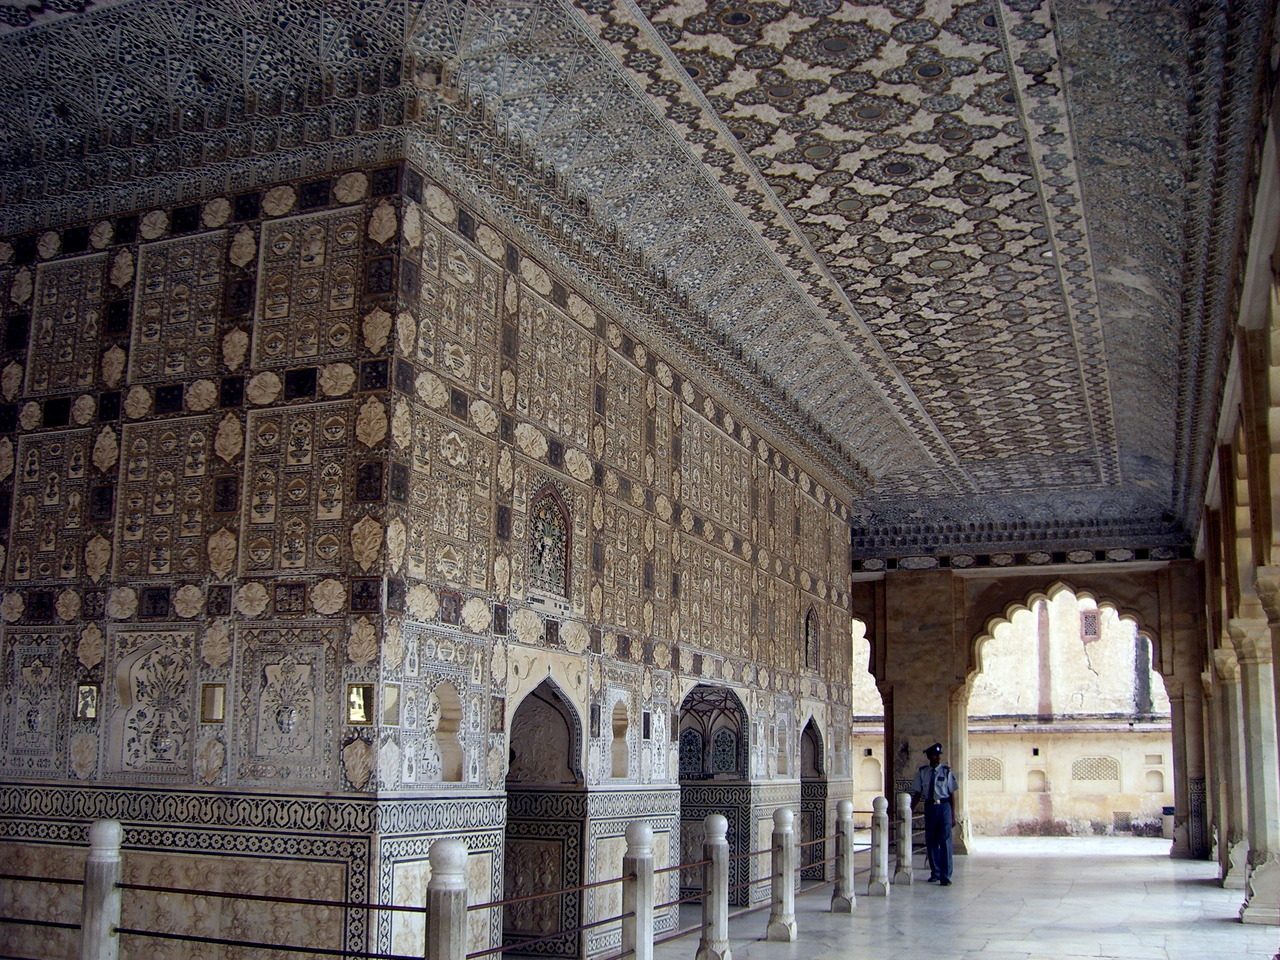 The mirror palace inside Amer Fort, India.